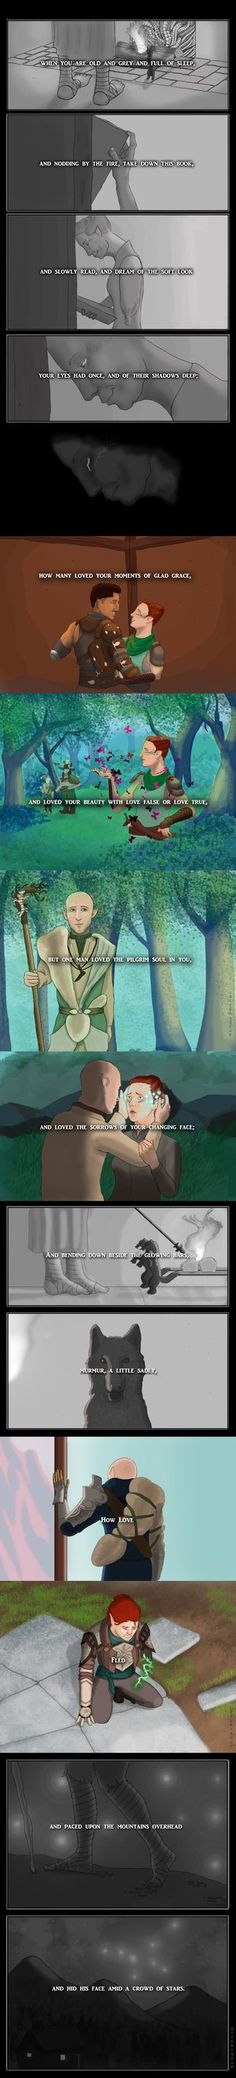 When You Are Old and Grey [Trespasser spoilers] by otterysoup Solas x Lavellan